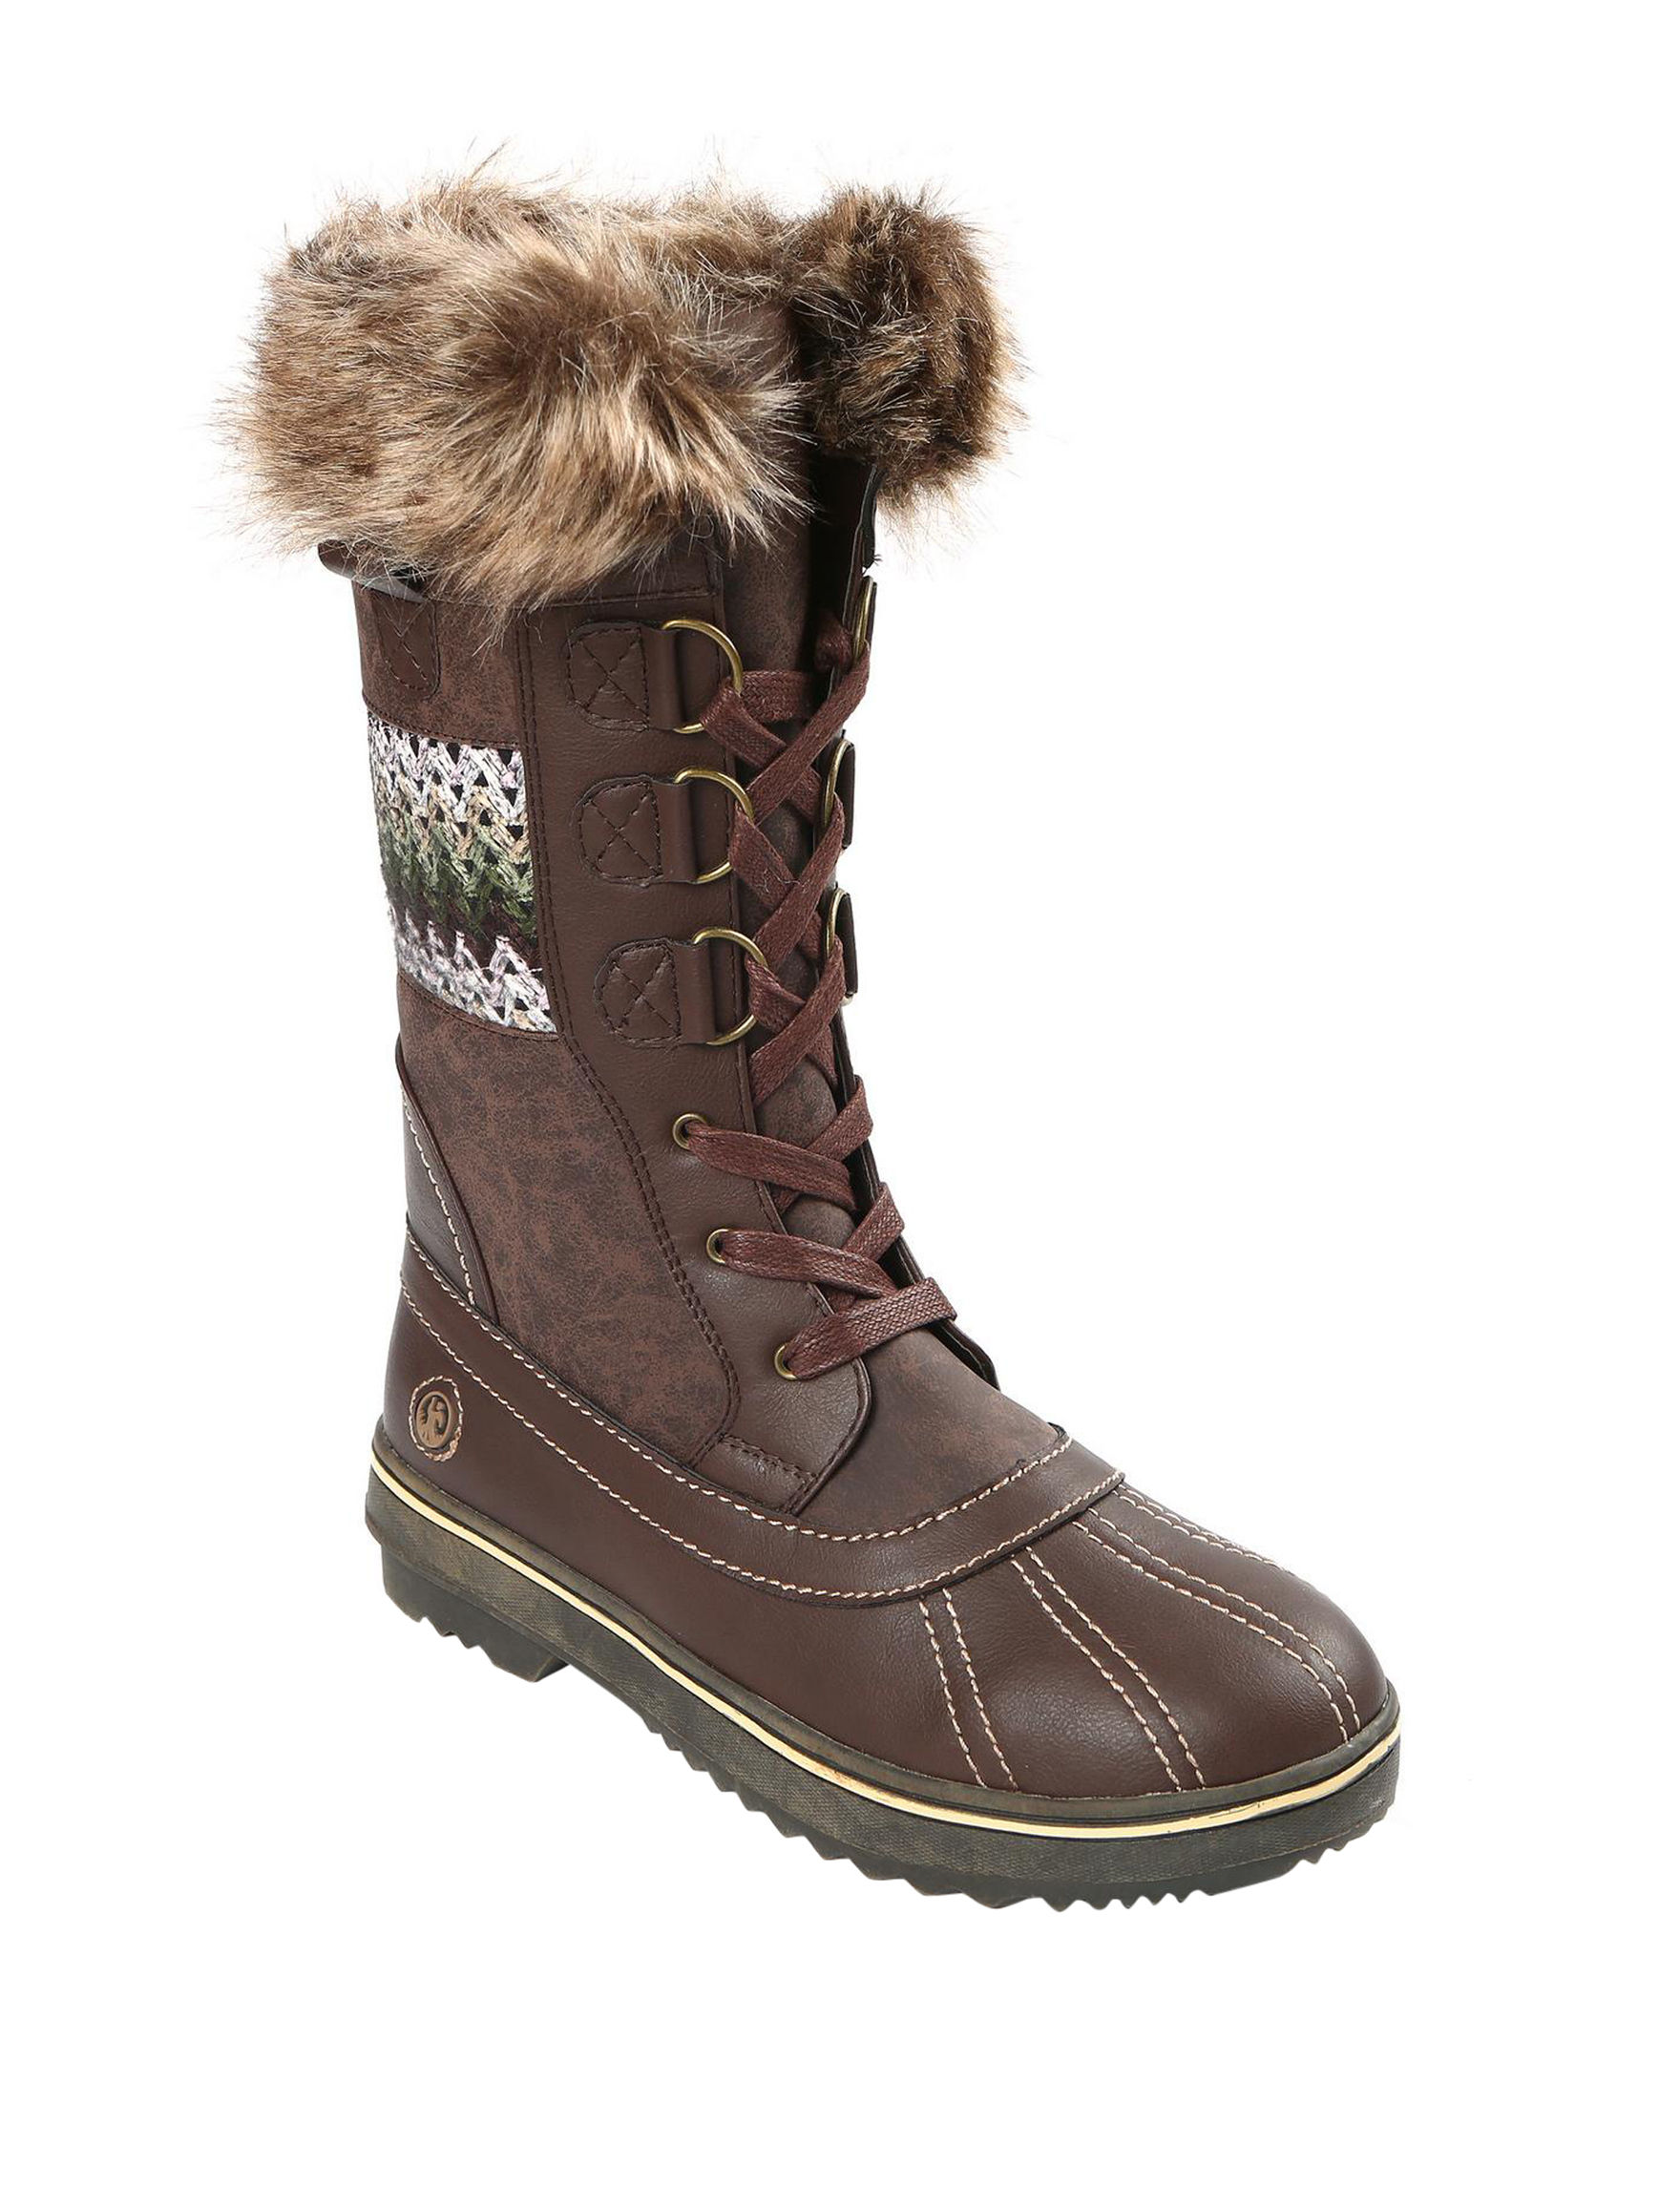 Northside Brown / Green Winter Boots